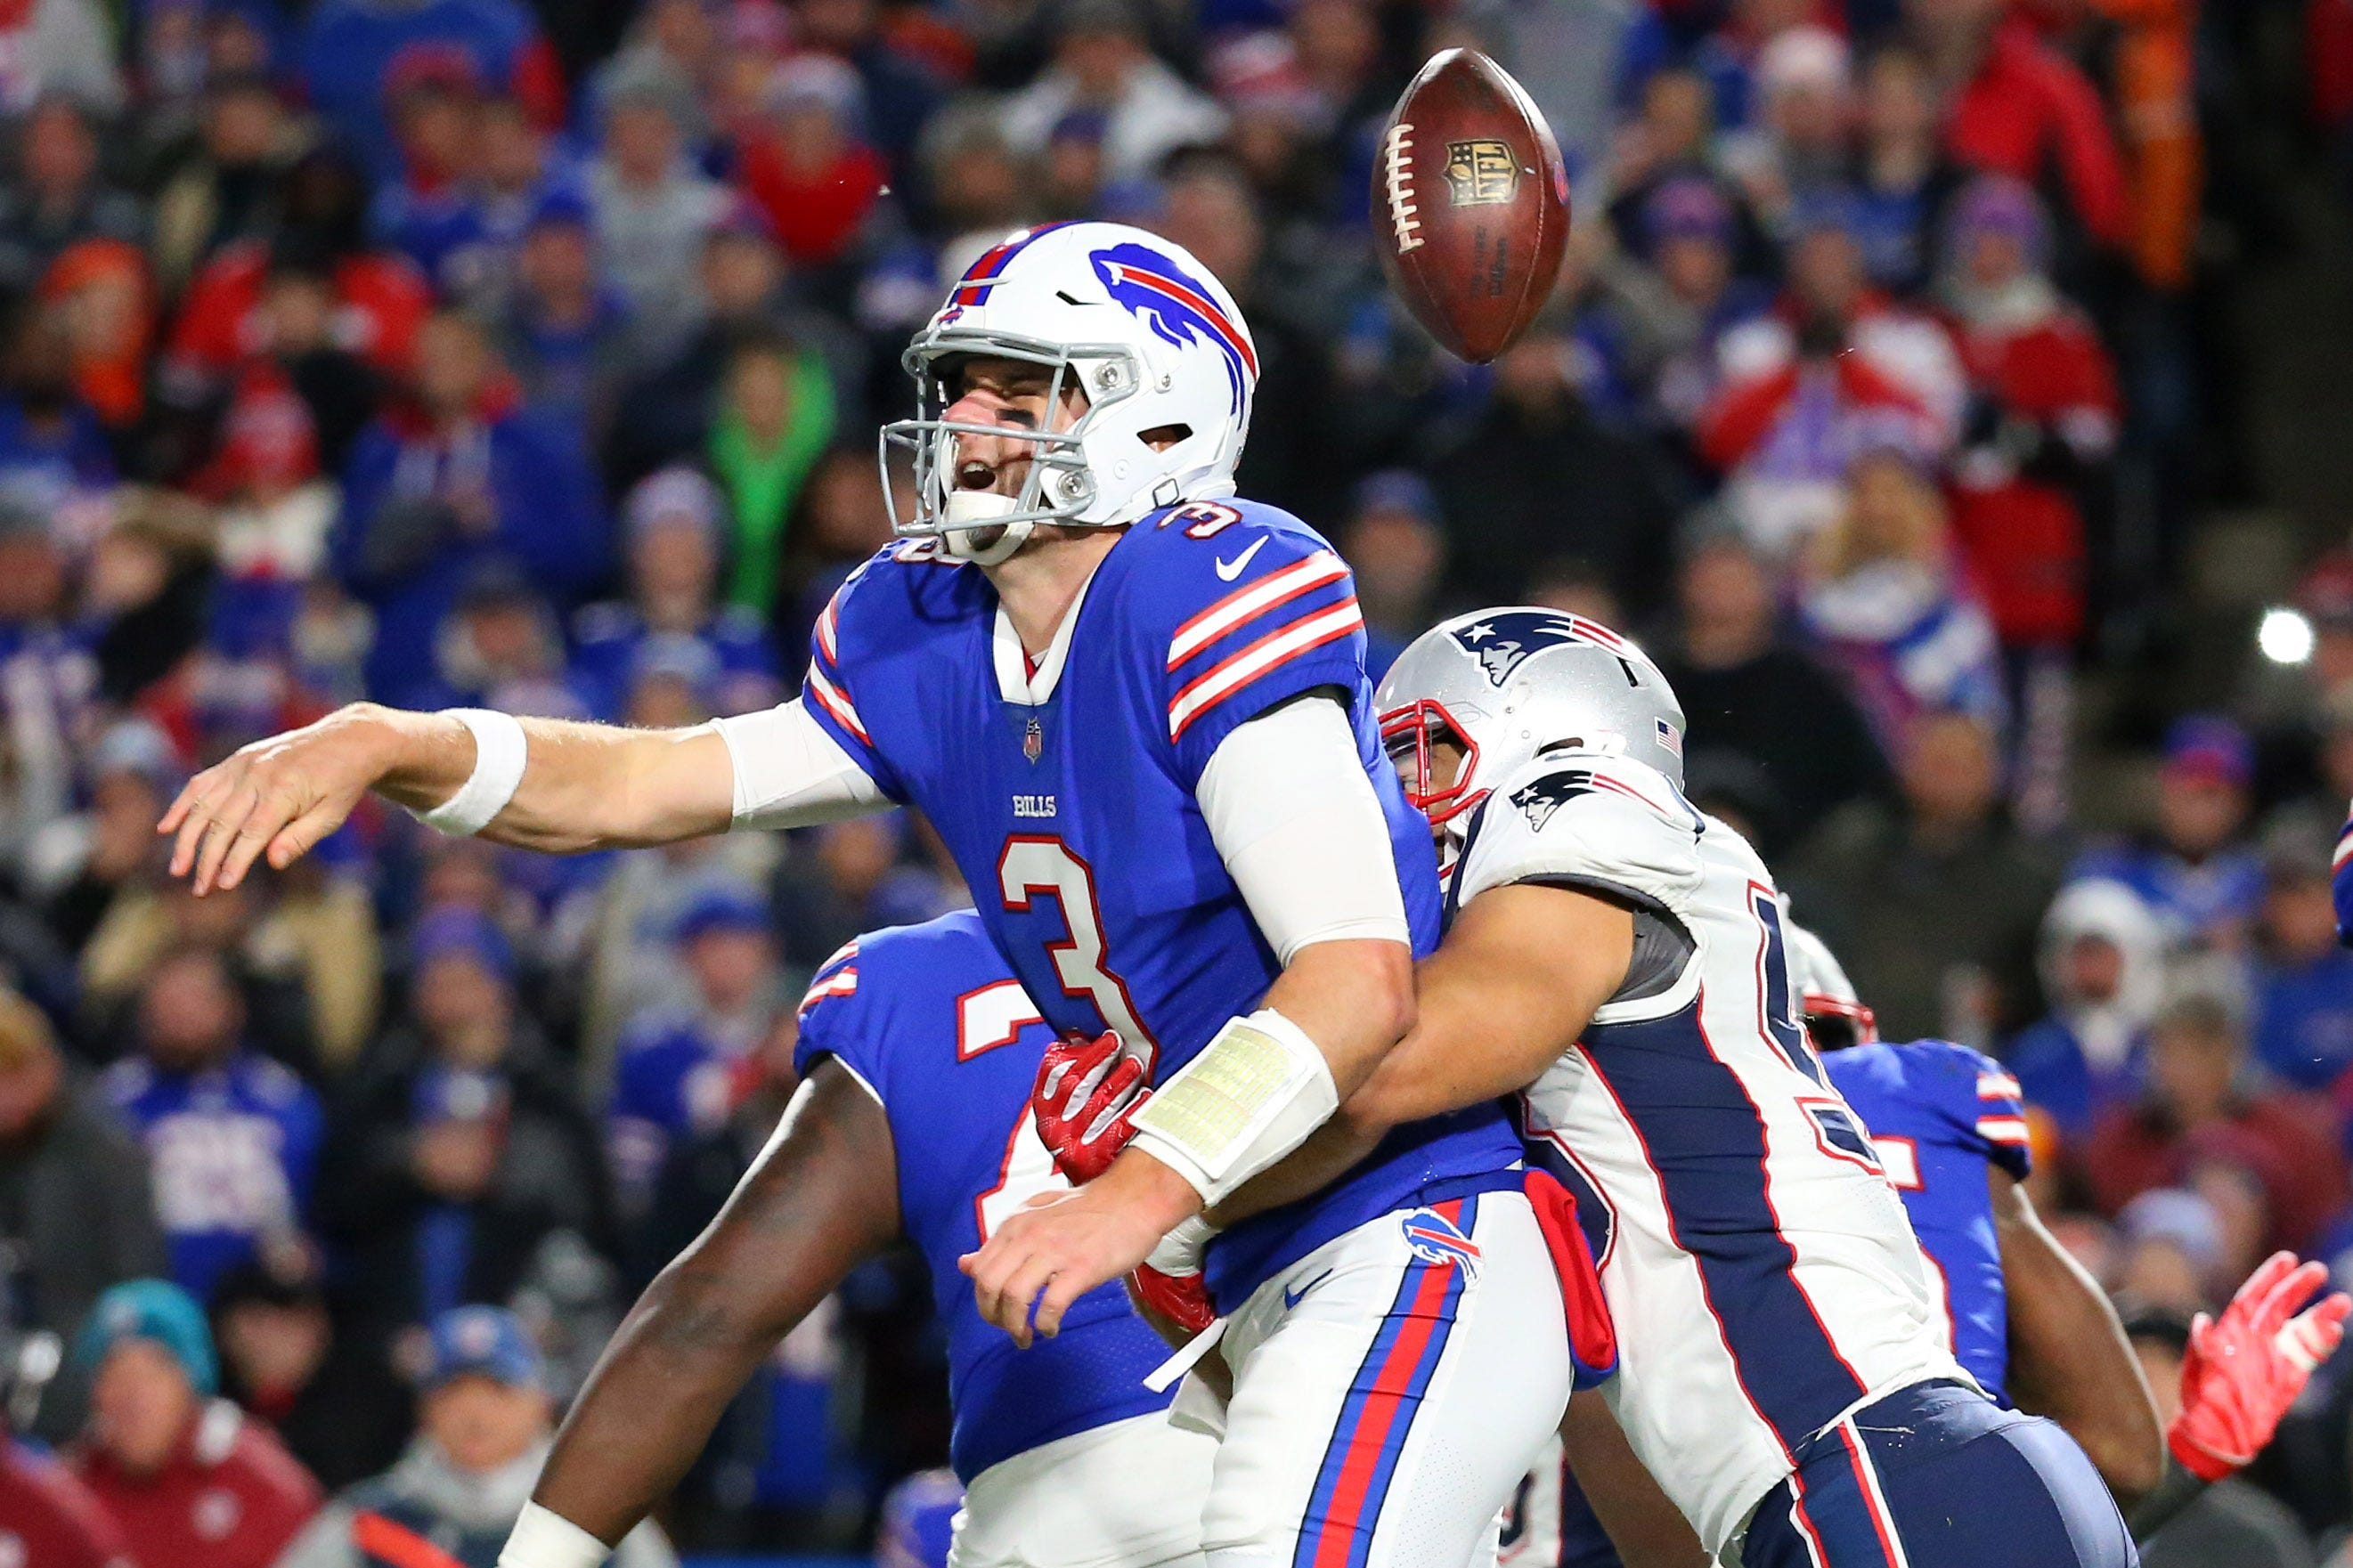 Just another night of offensive misery for Buffalo Bills in loss to New England Patriots